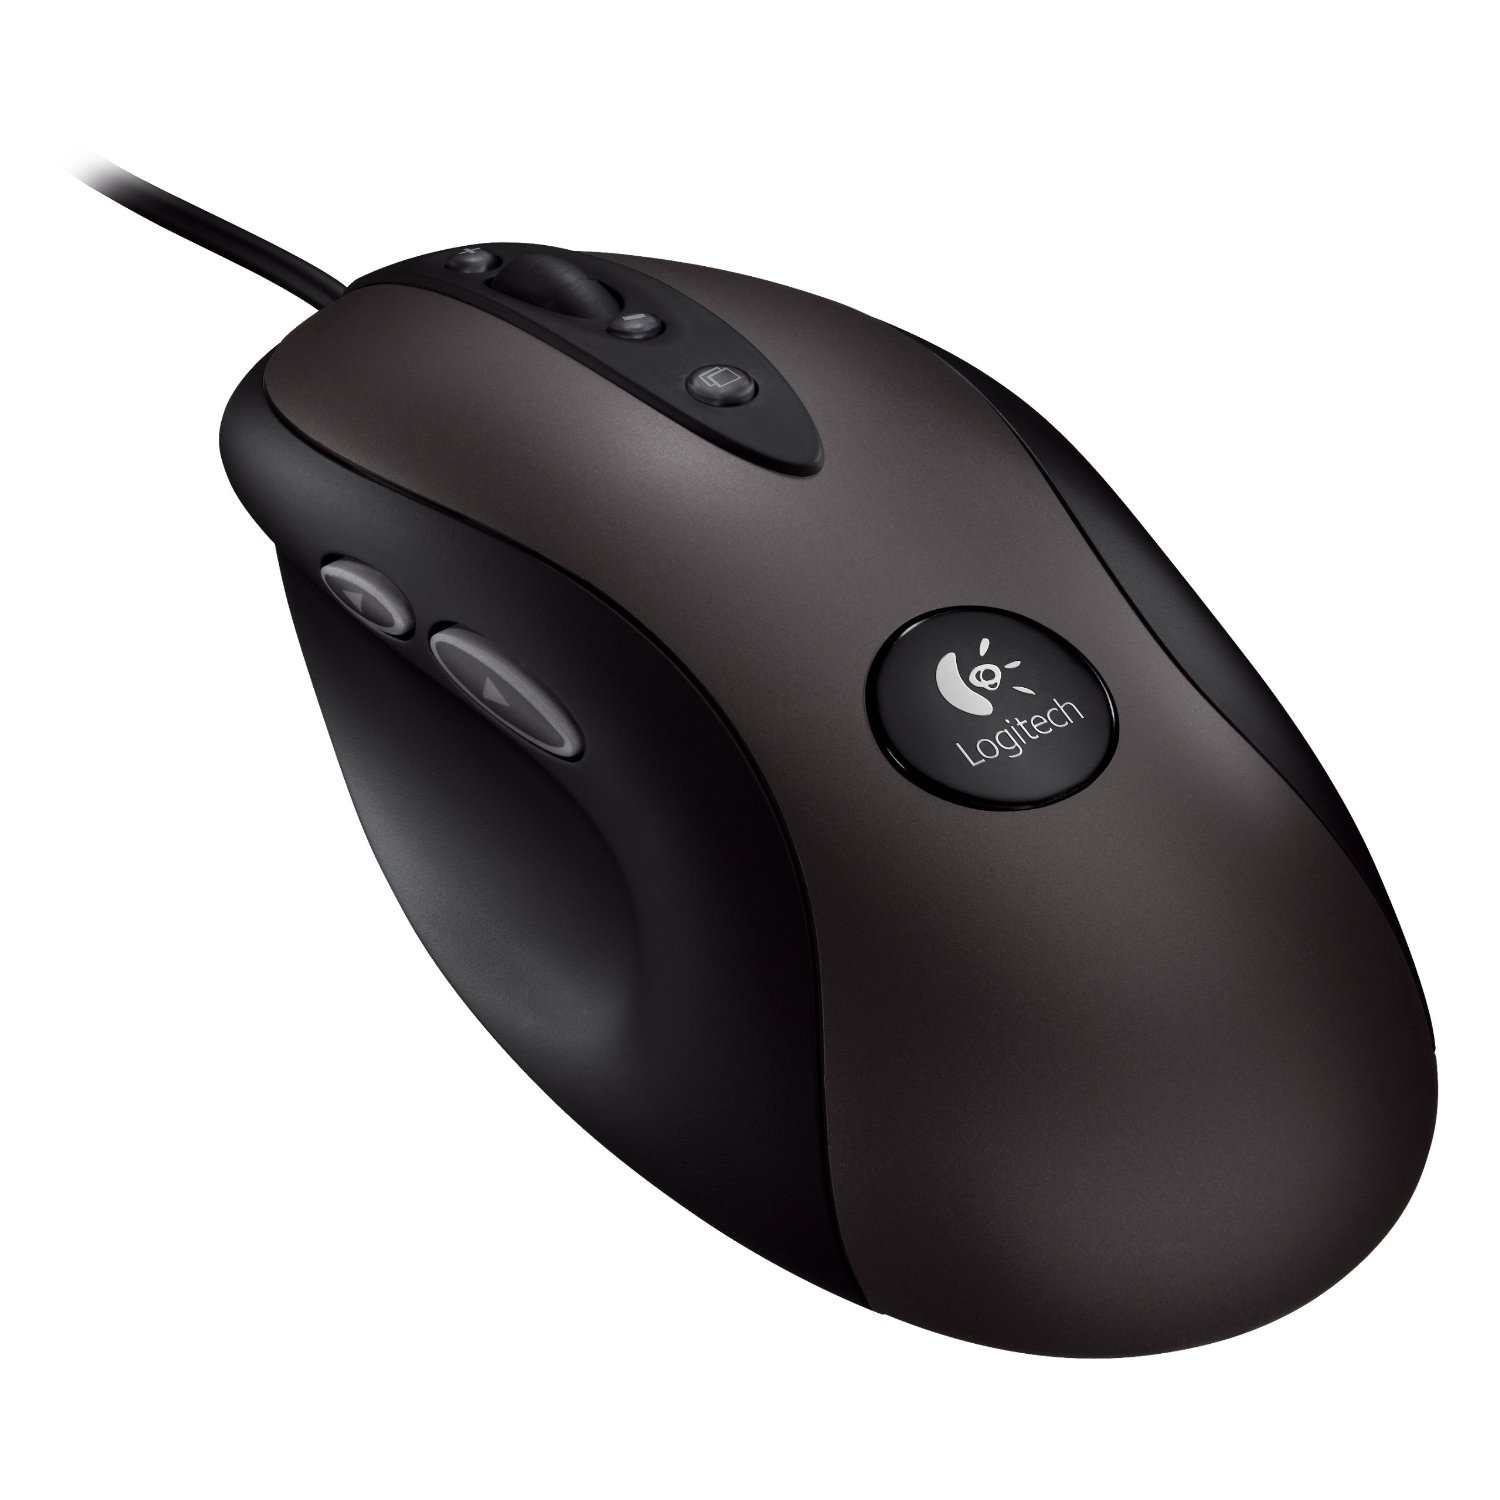 Logitech G400 Optical Gaming Mouse ~ Gaming Gear Store